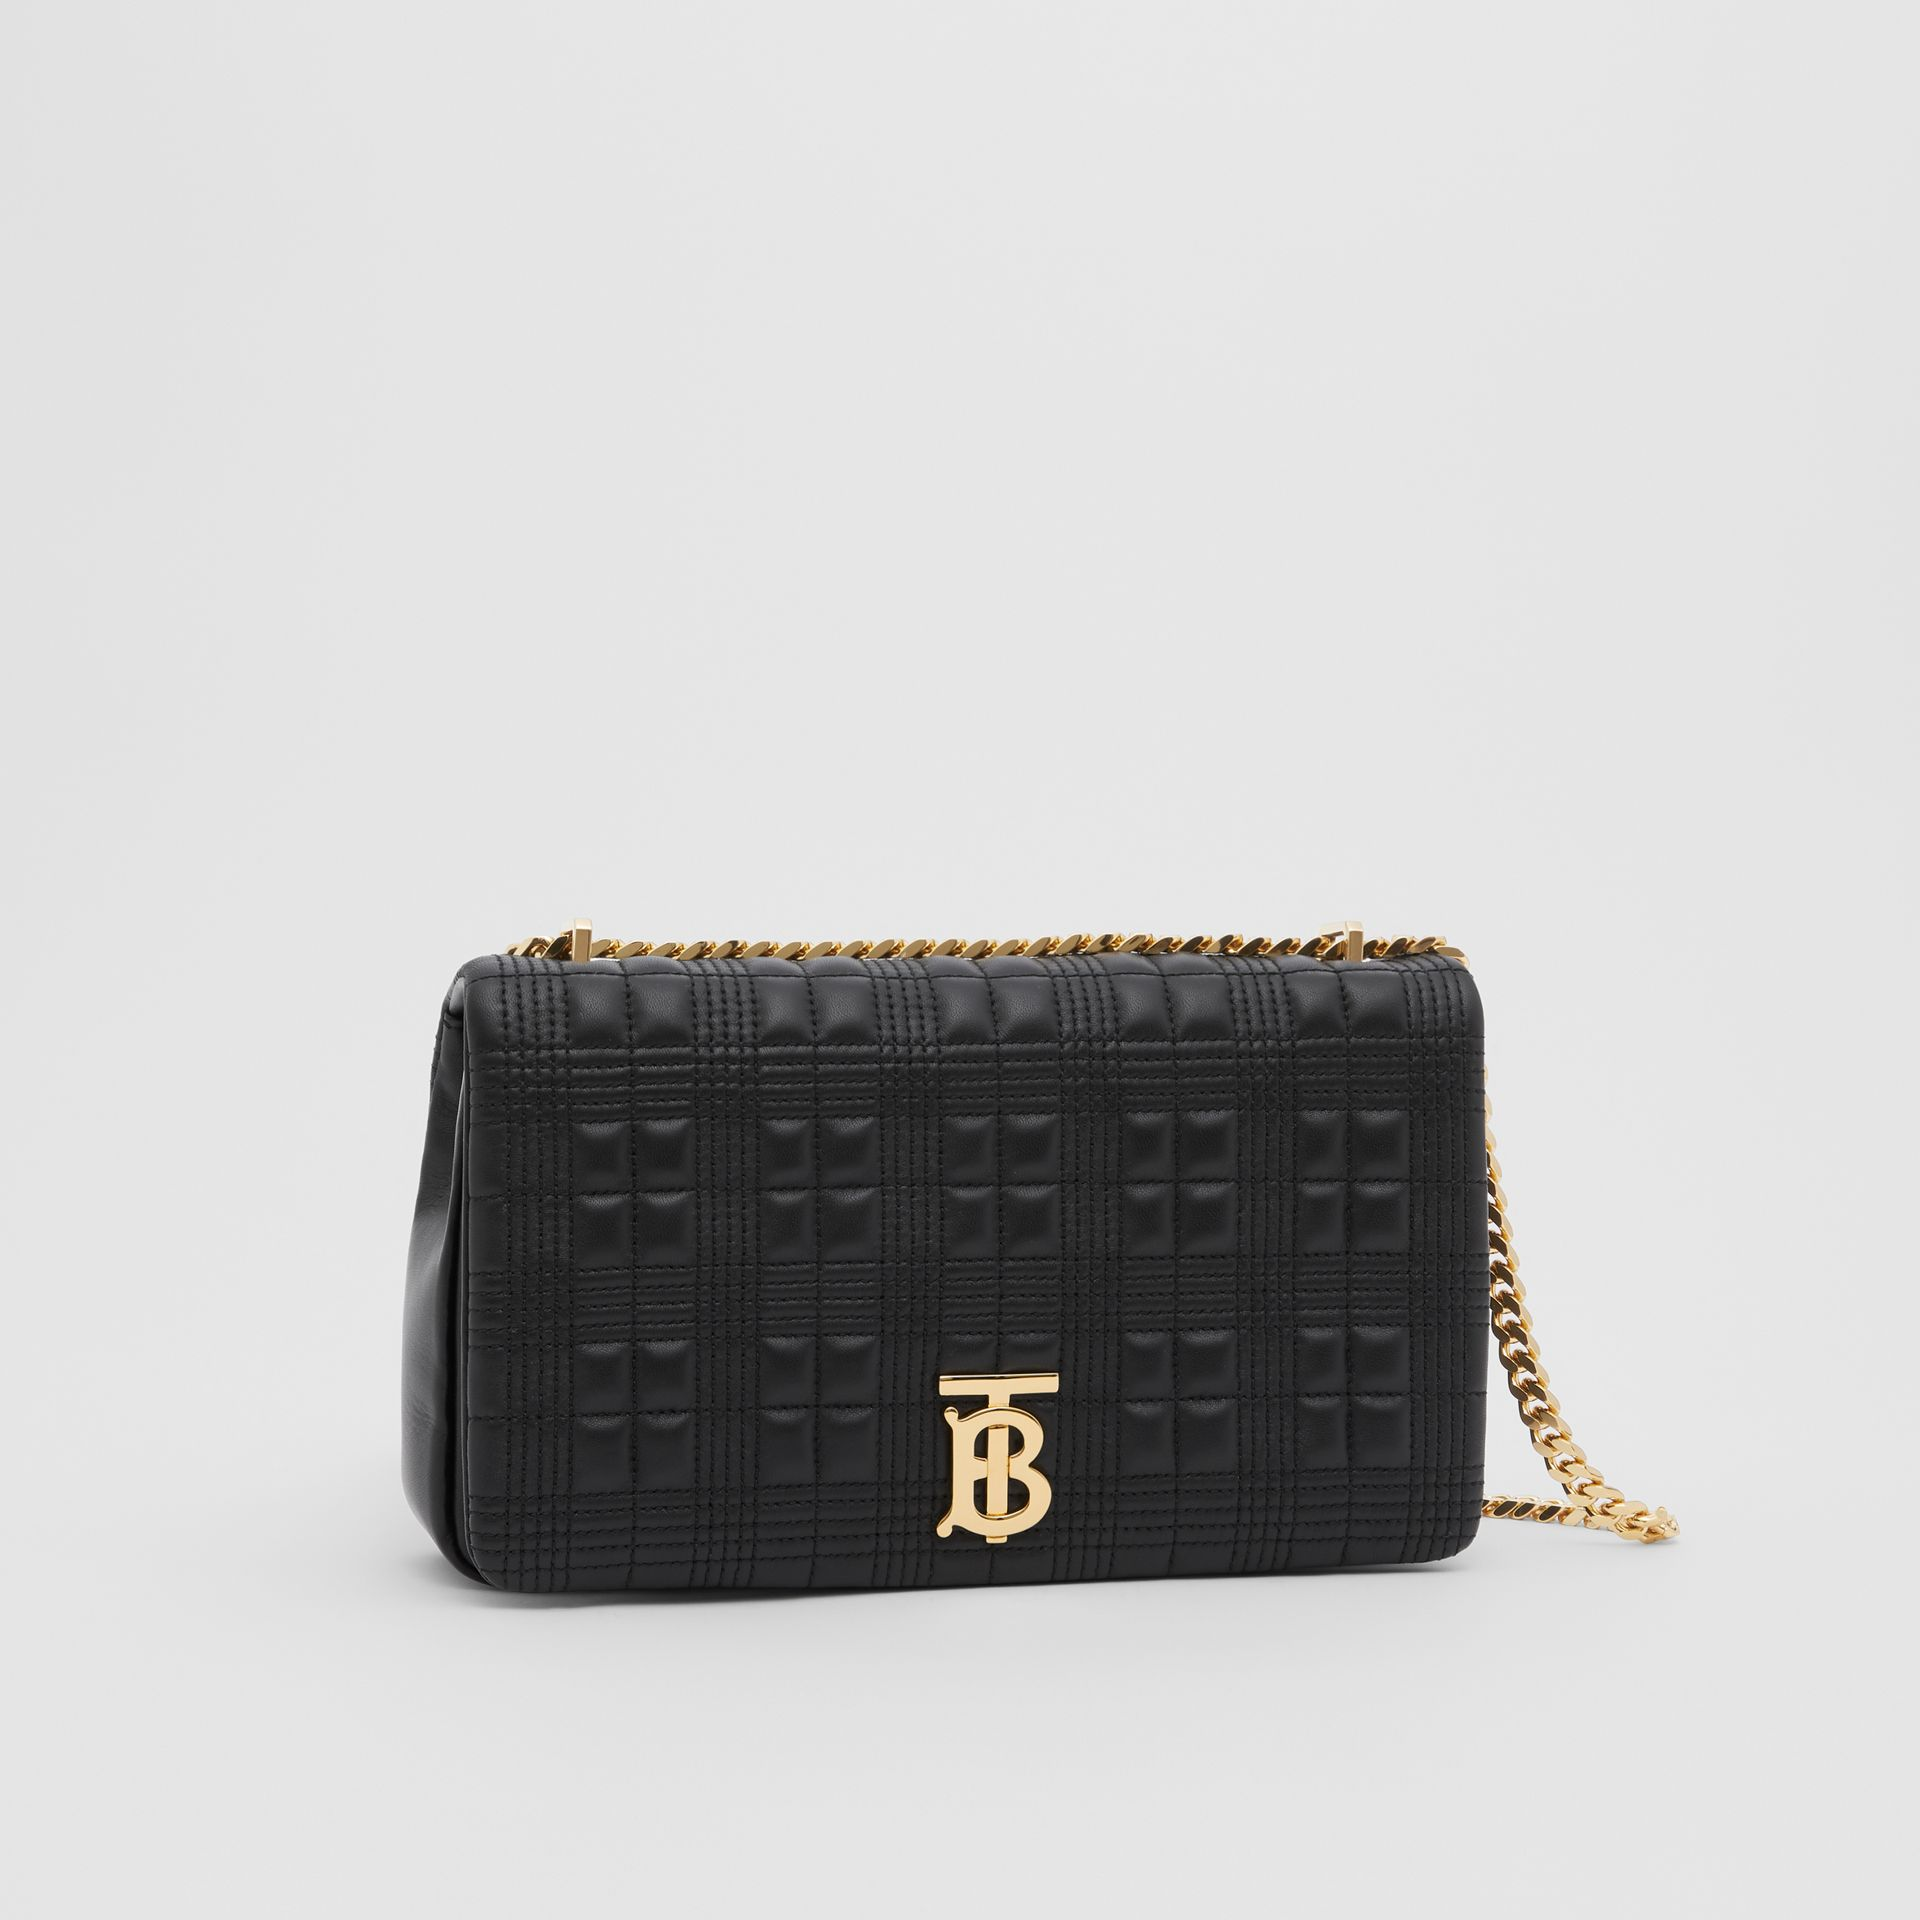 Medium Quilted Check Lambskin Lola Bag in Black - Women | Burberry - gallery image 4